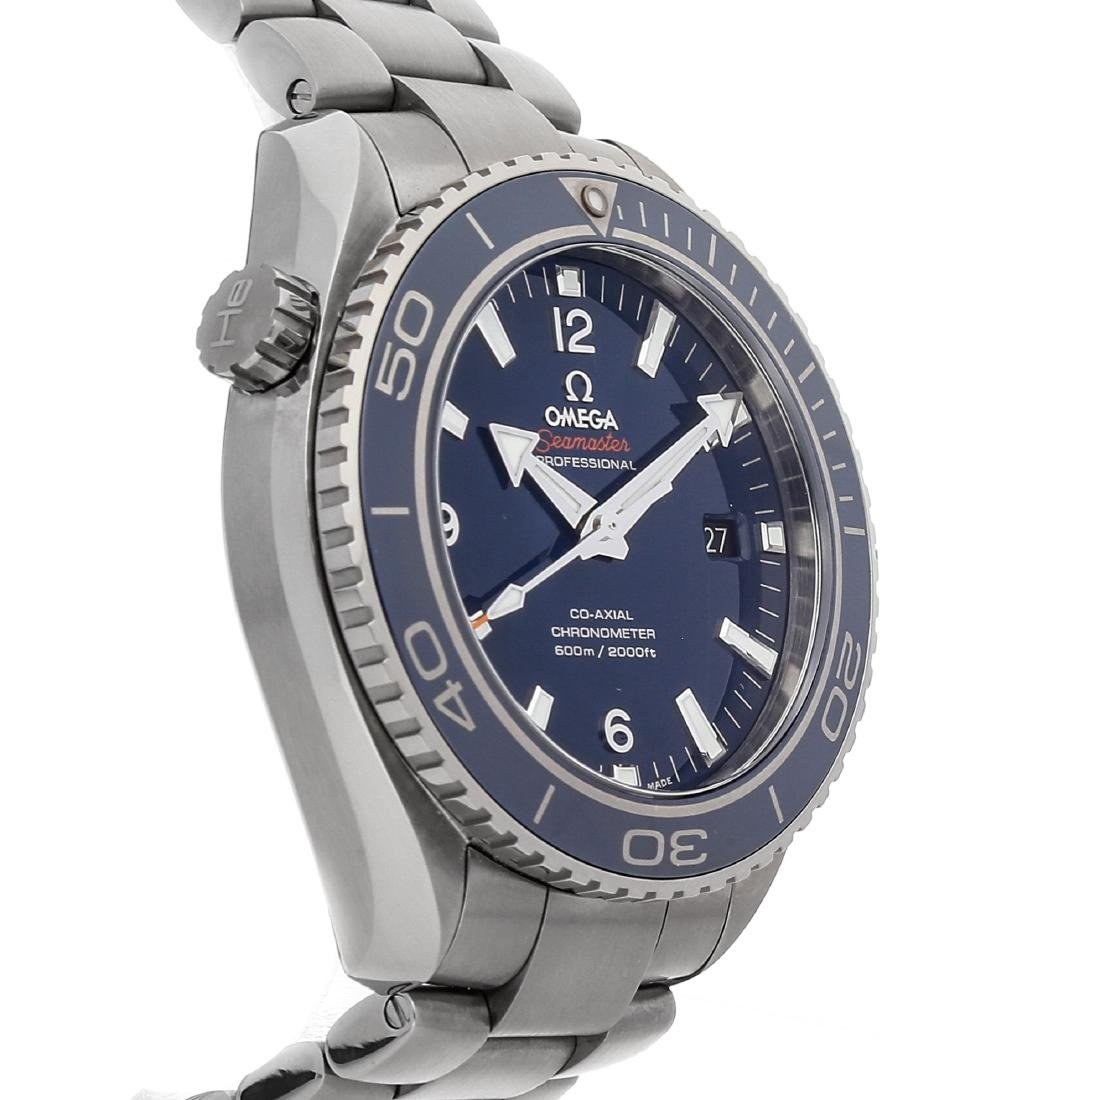 OMEGA SEAMASTER PLANET OCEAN 600M CO-AXIAL - 4